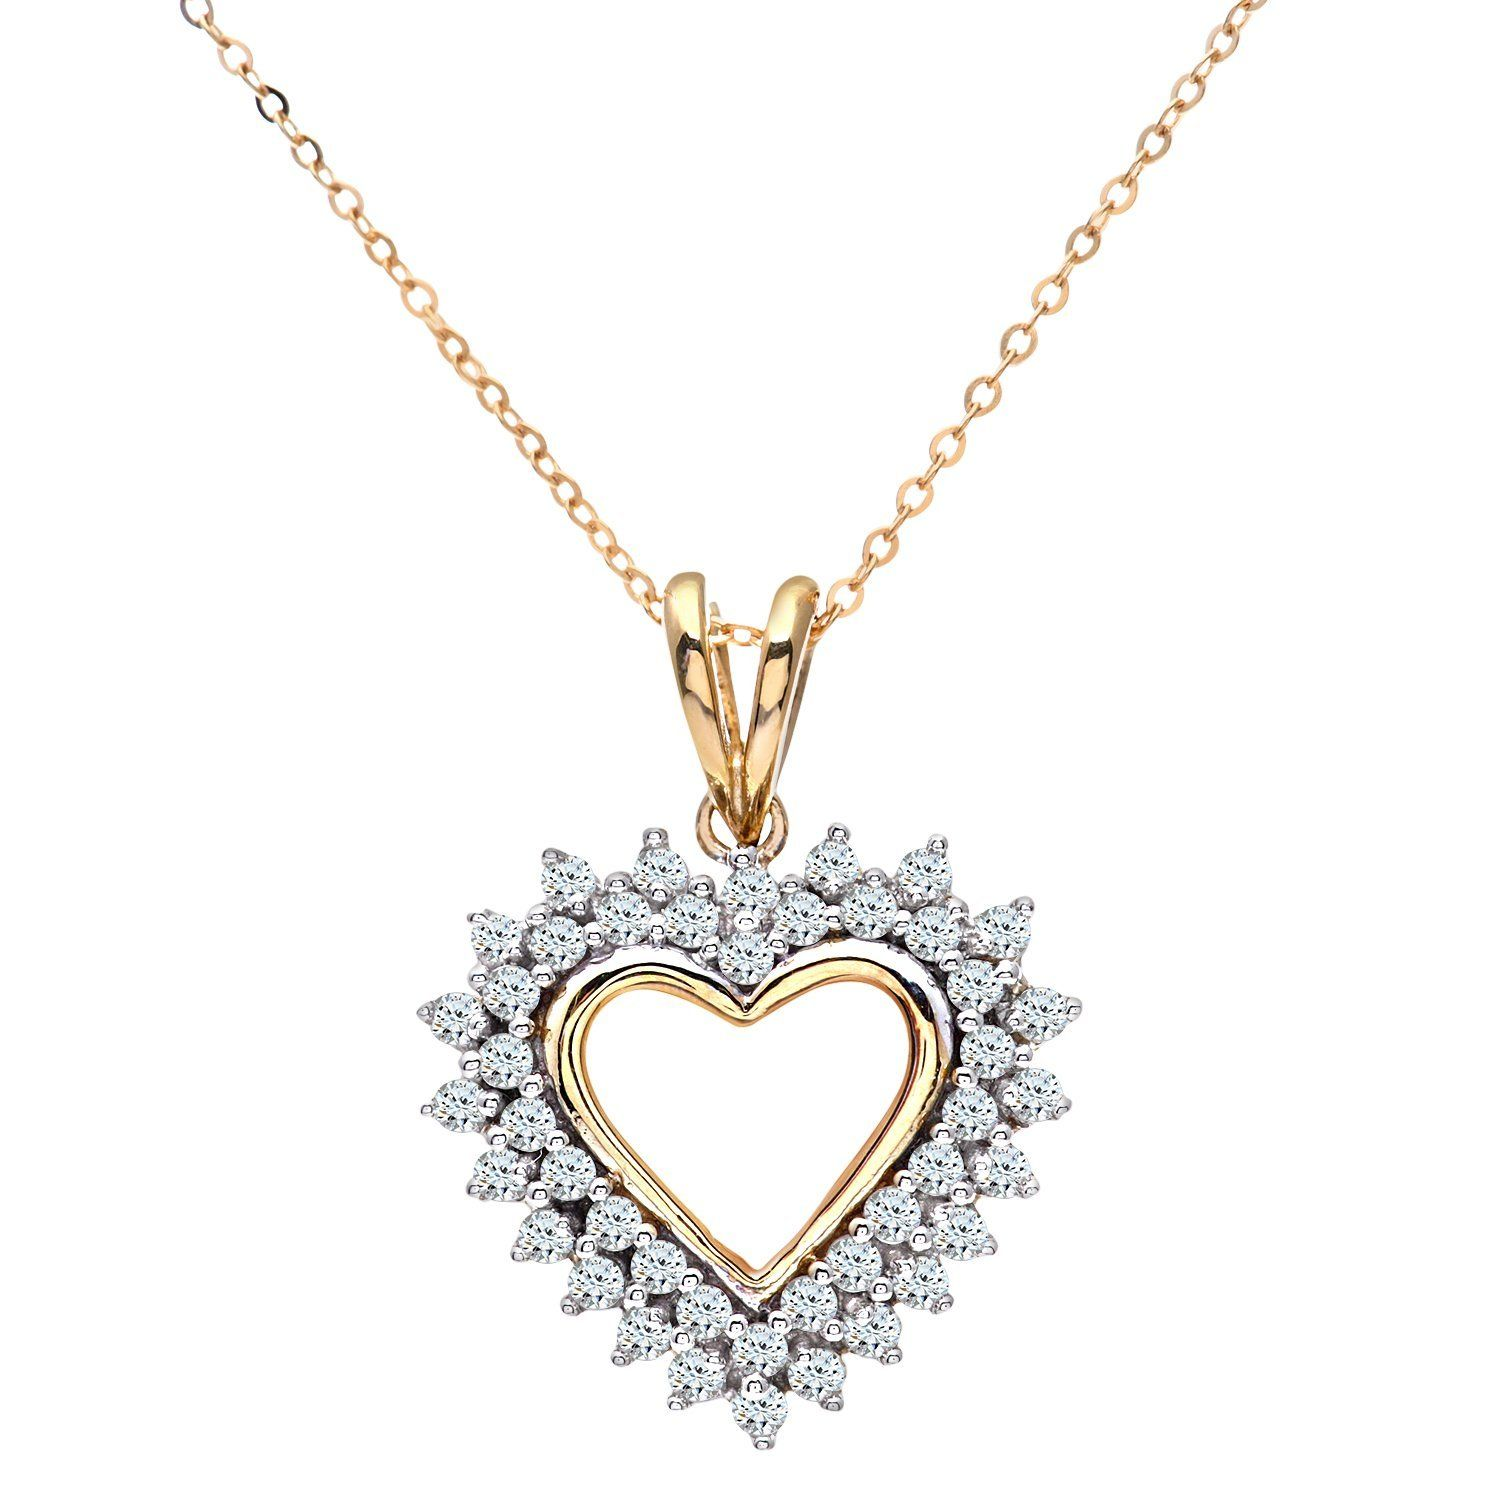 Naava Women's 9 ct White Gold Diamond Flower Heart Pendant + 46 cm Trace Chain Necklace sO8LE6Go